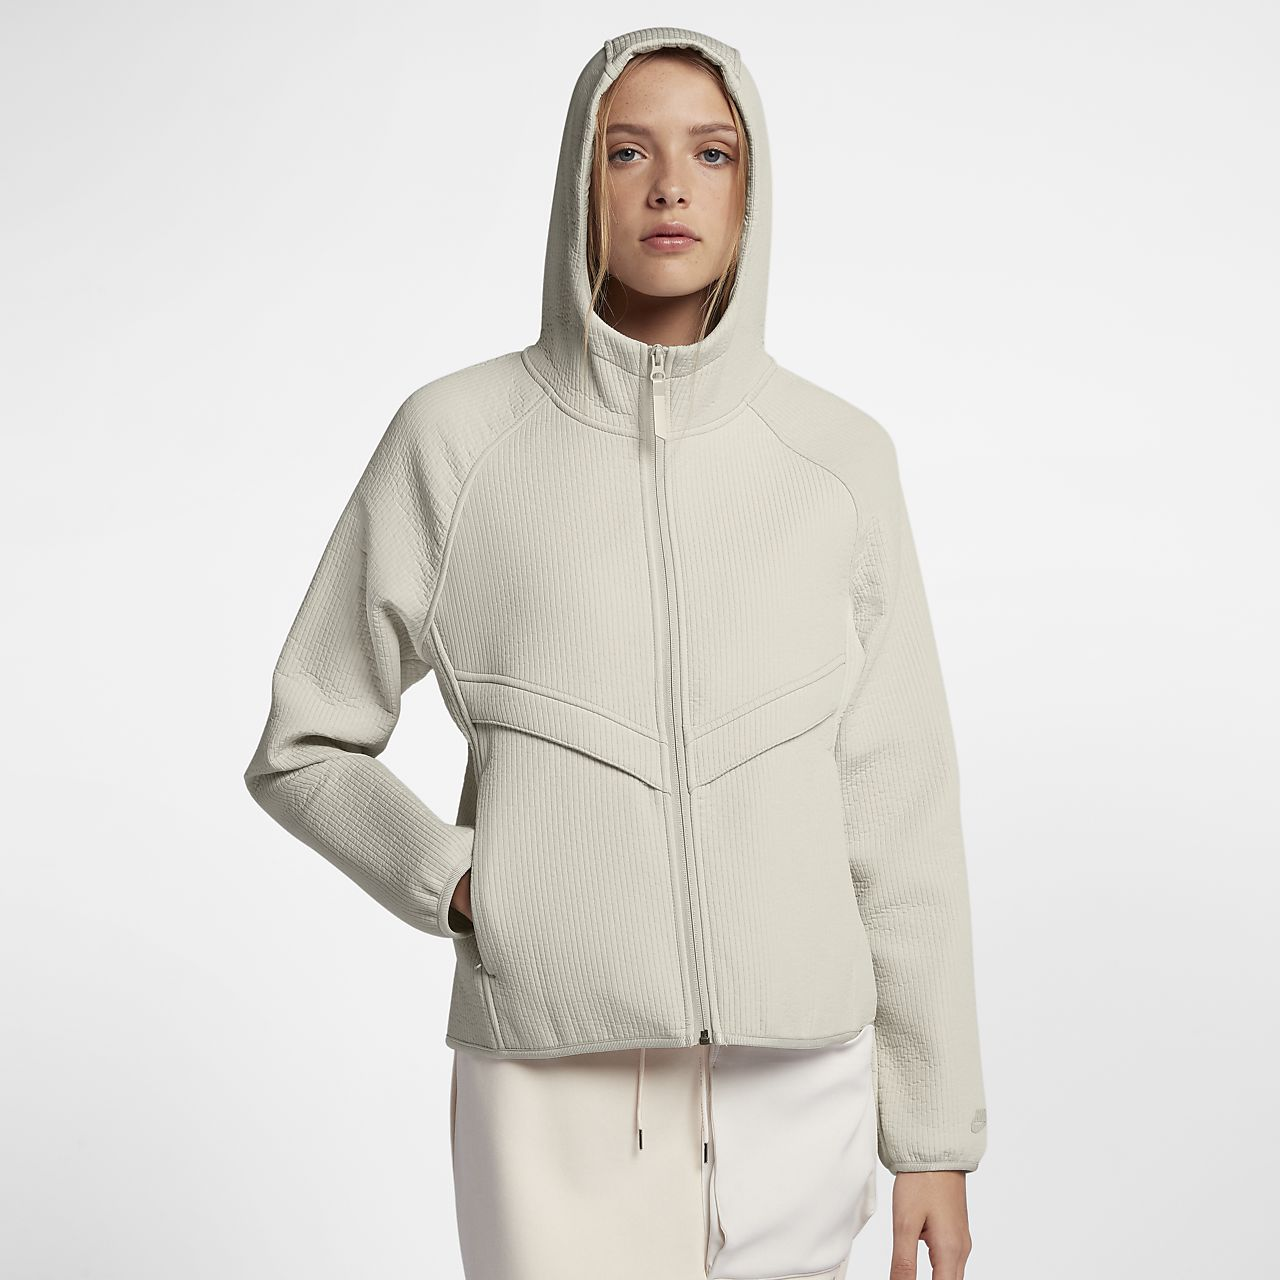 Be Femme Pack Sportswear Windrunner Nike Tech Pour Veste xItw5n0Yqn